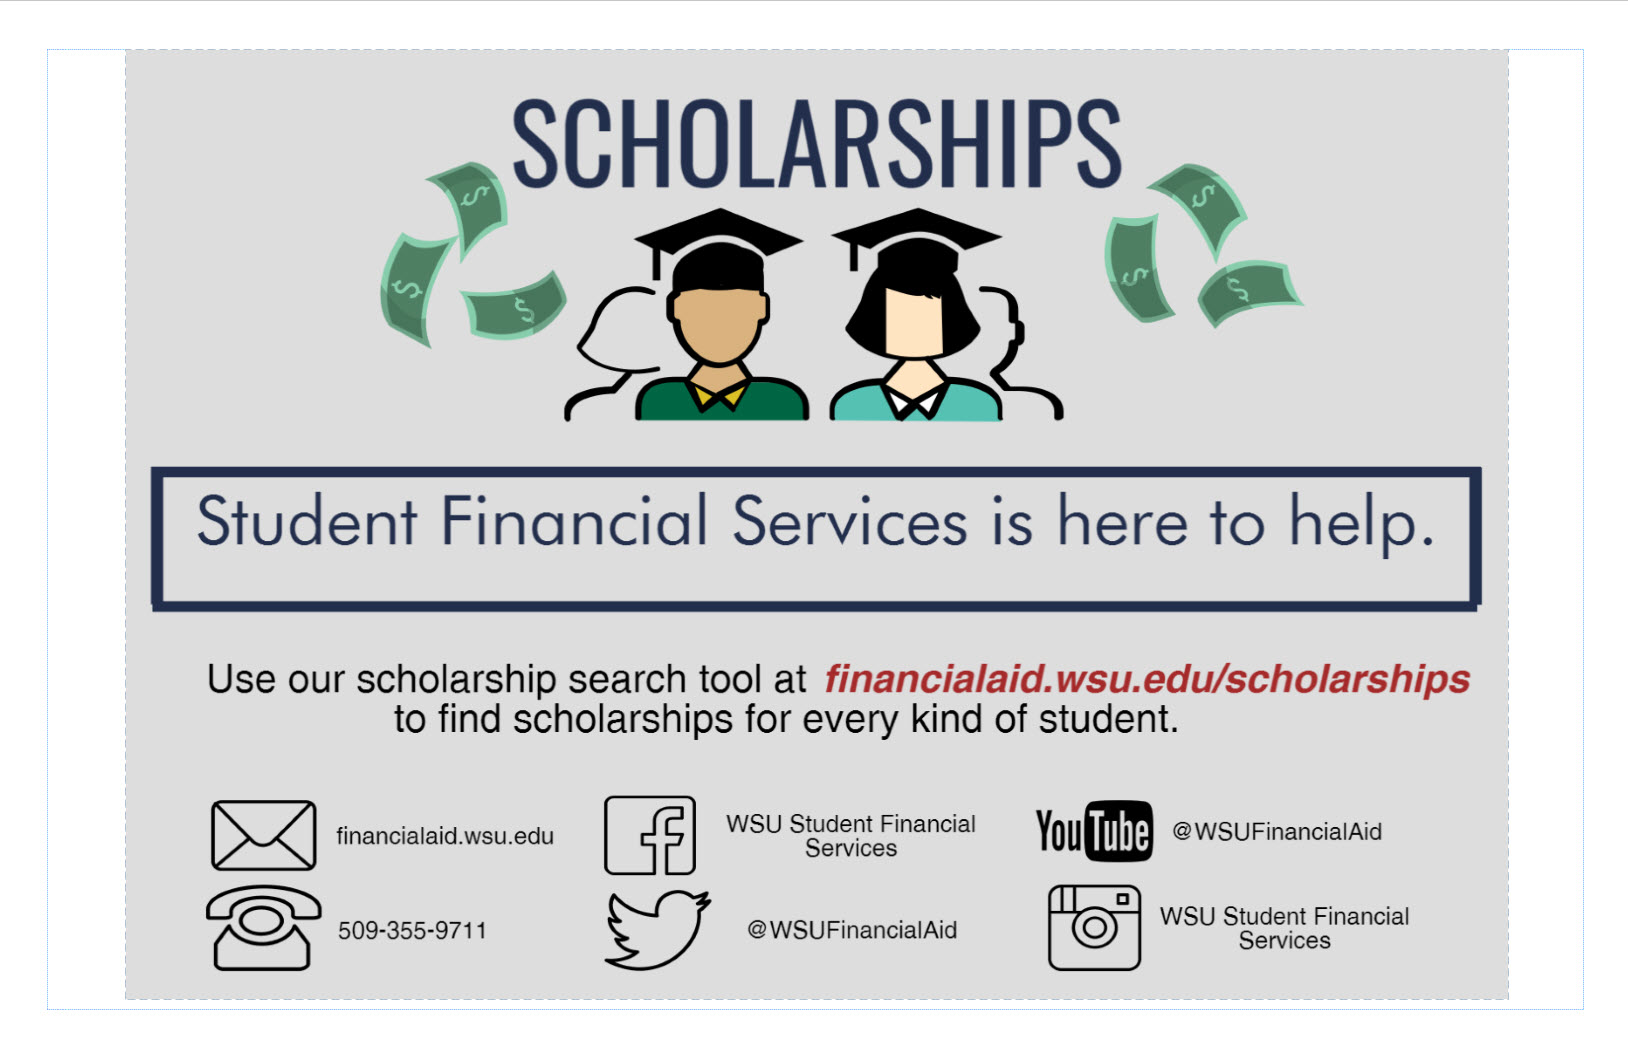 thumb_Scholarships-Handout